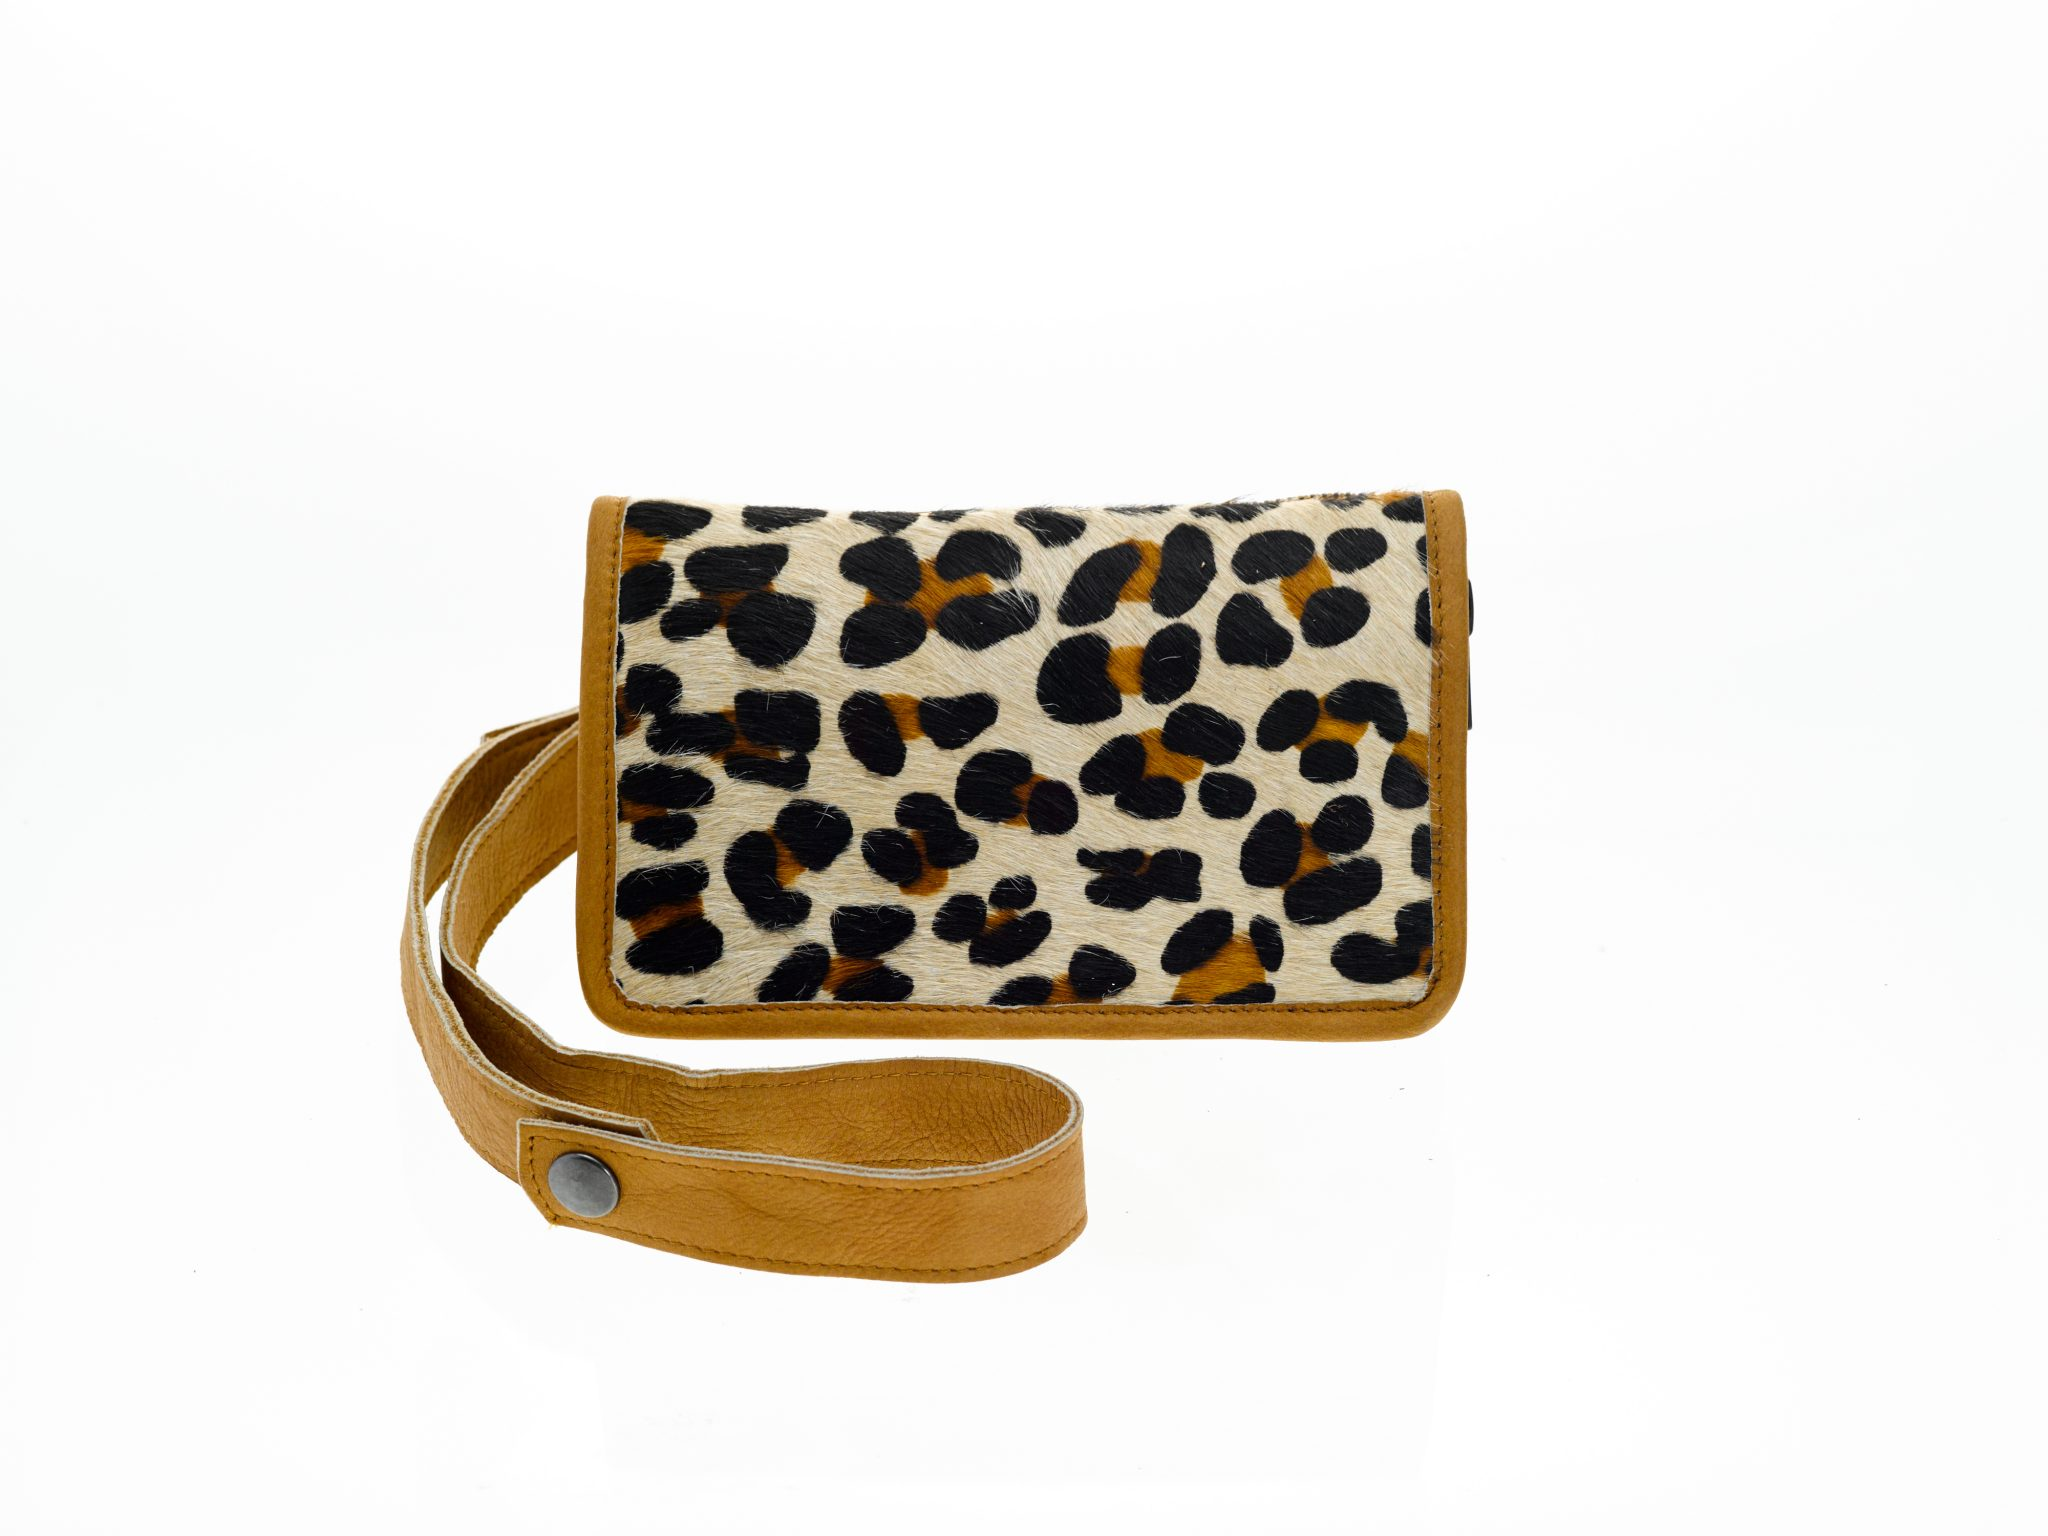 2a81c571447 Elvy - Amy fanny pack panther skin - No. 28 wonen & lifestyle